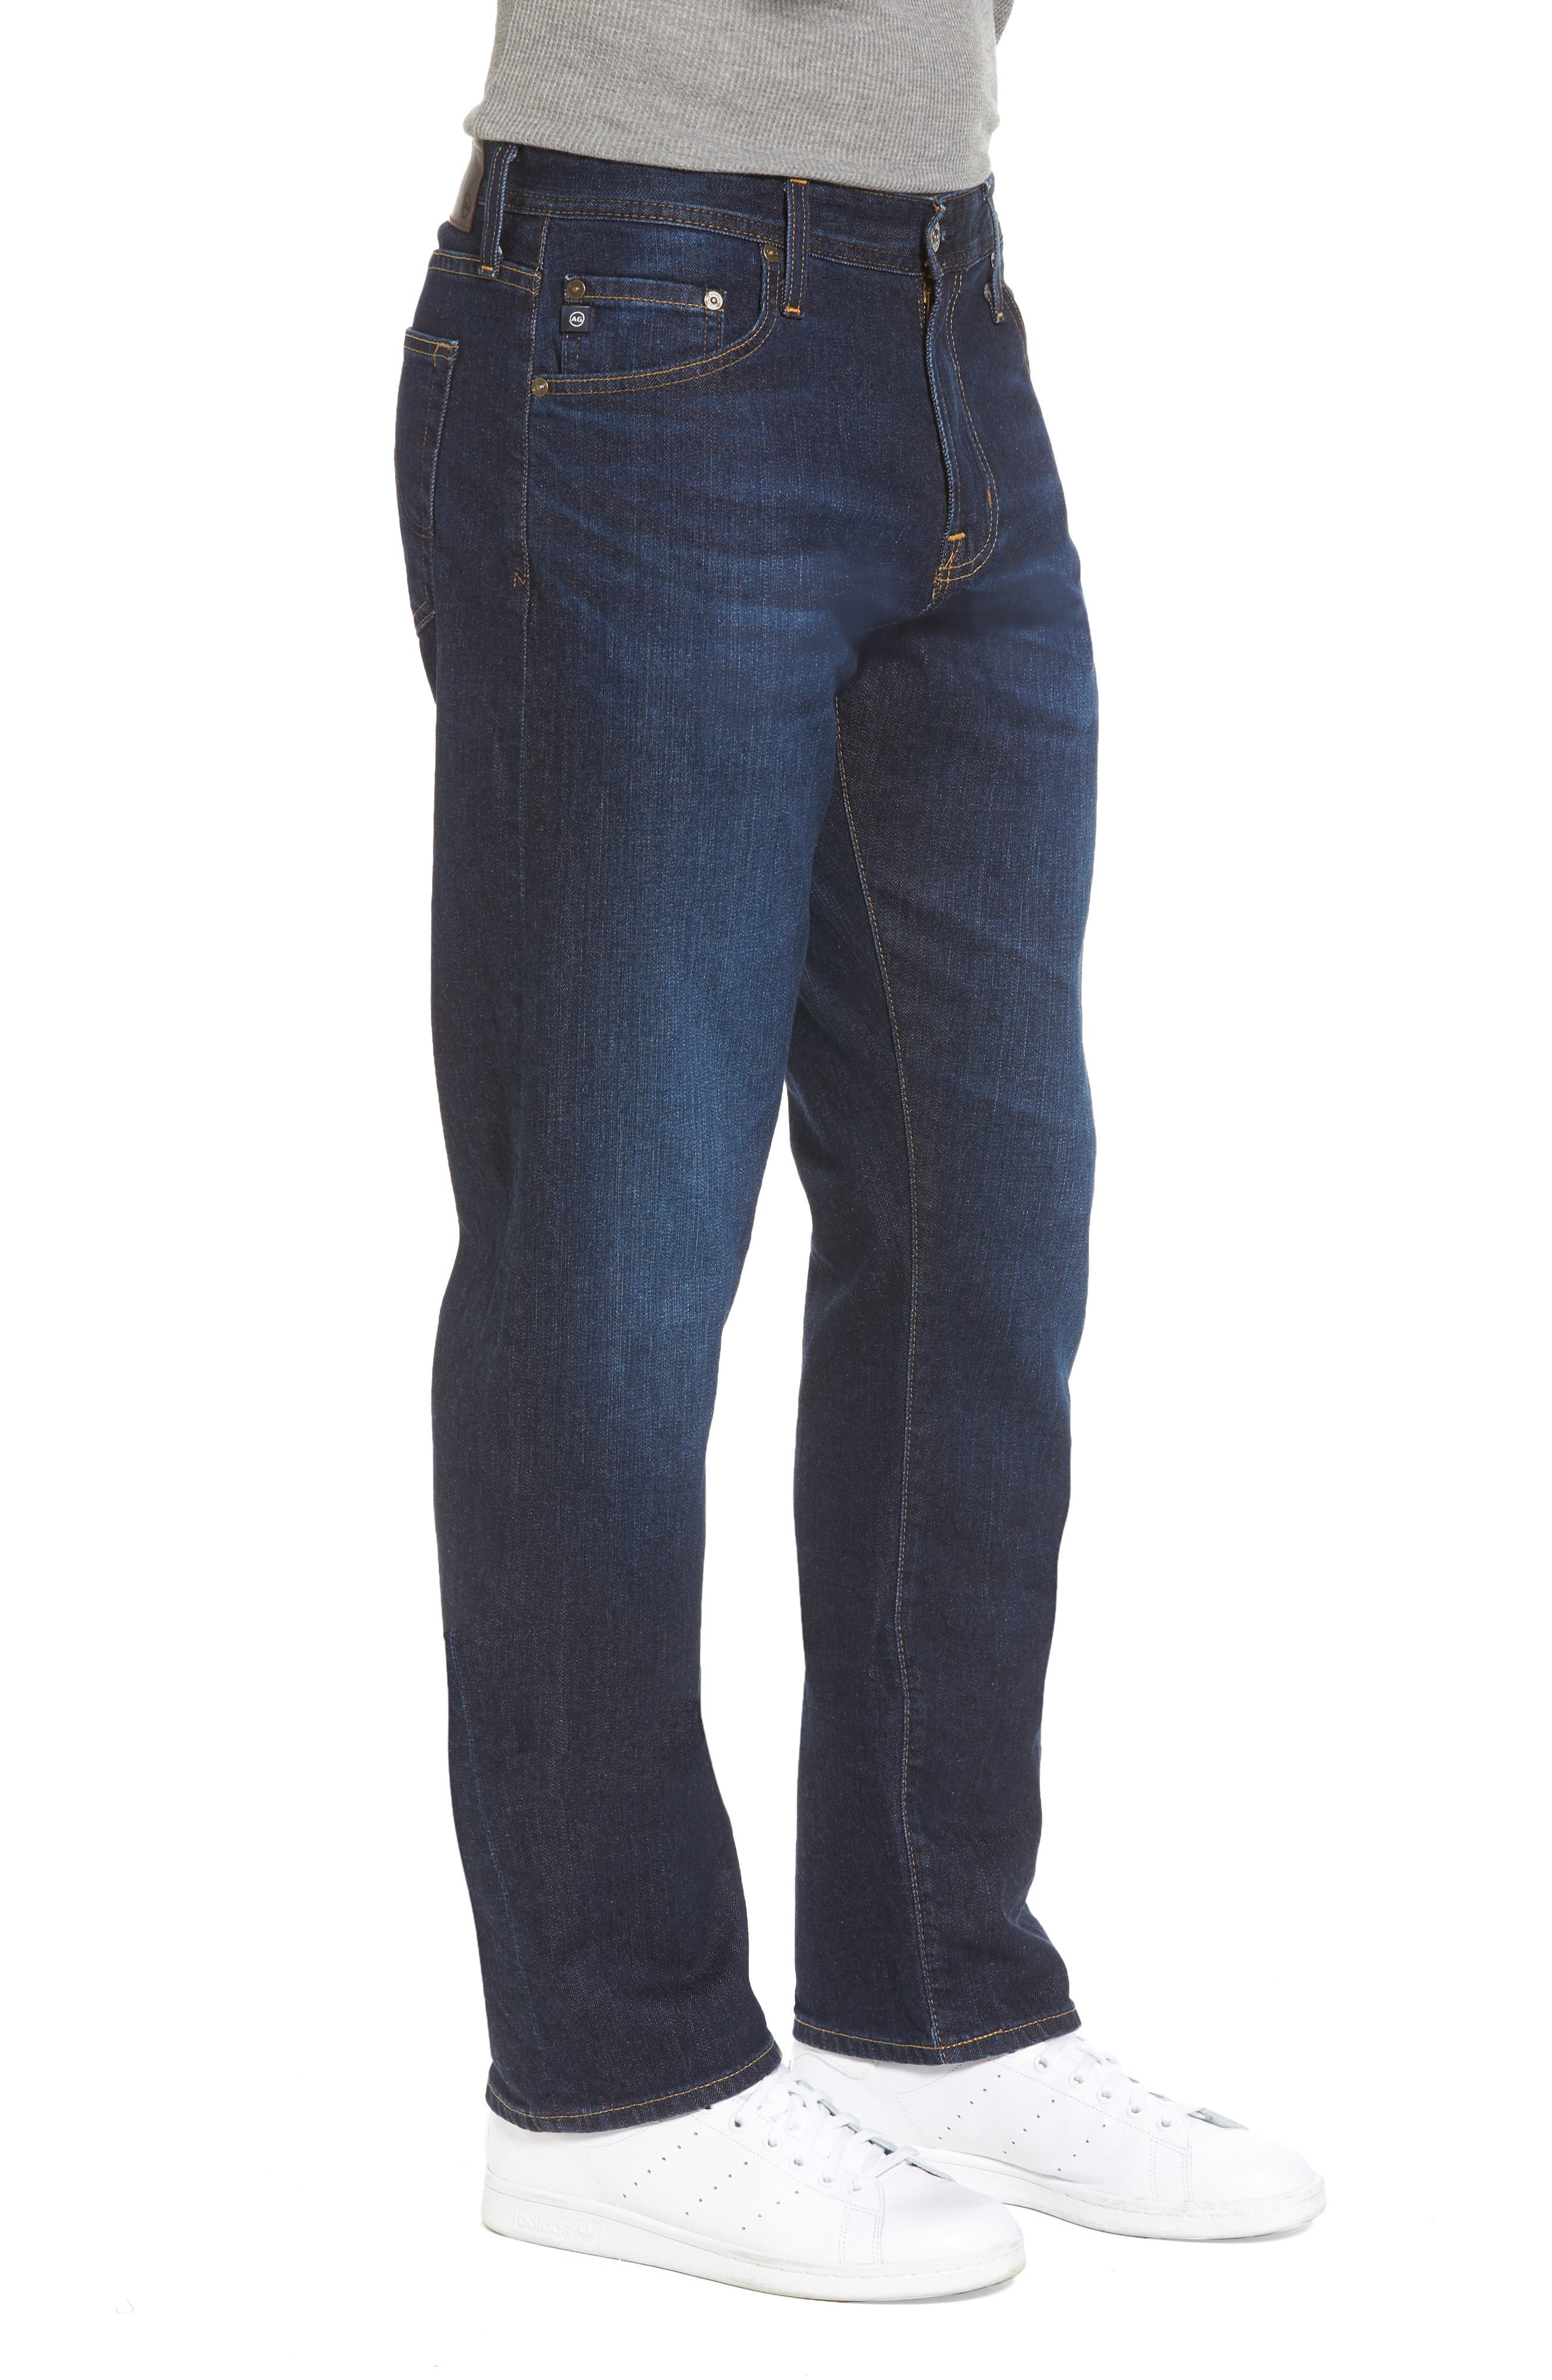 Ives Straight Fit Jeans,                             Alternate thumbnail 3, color,                             400